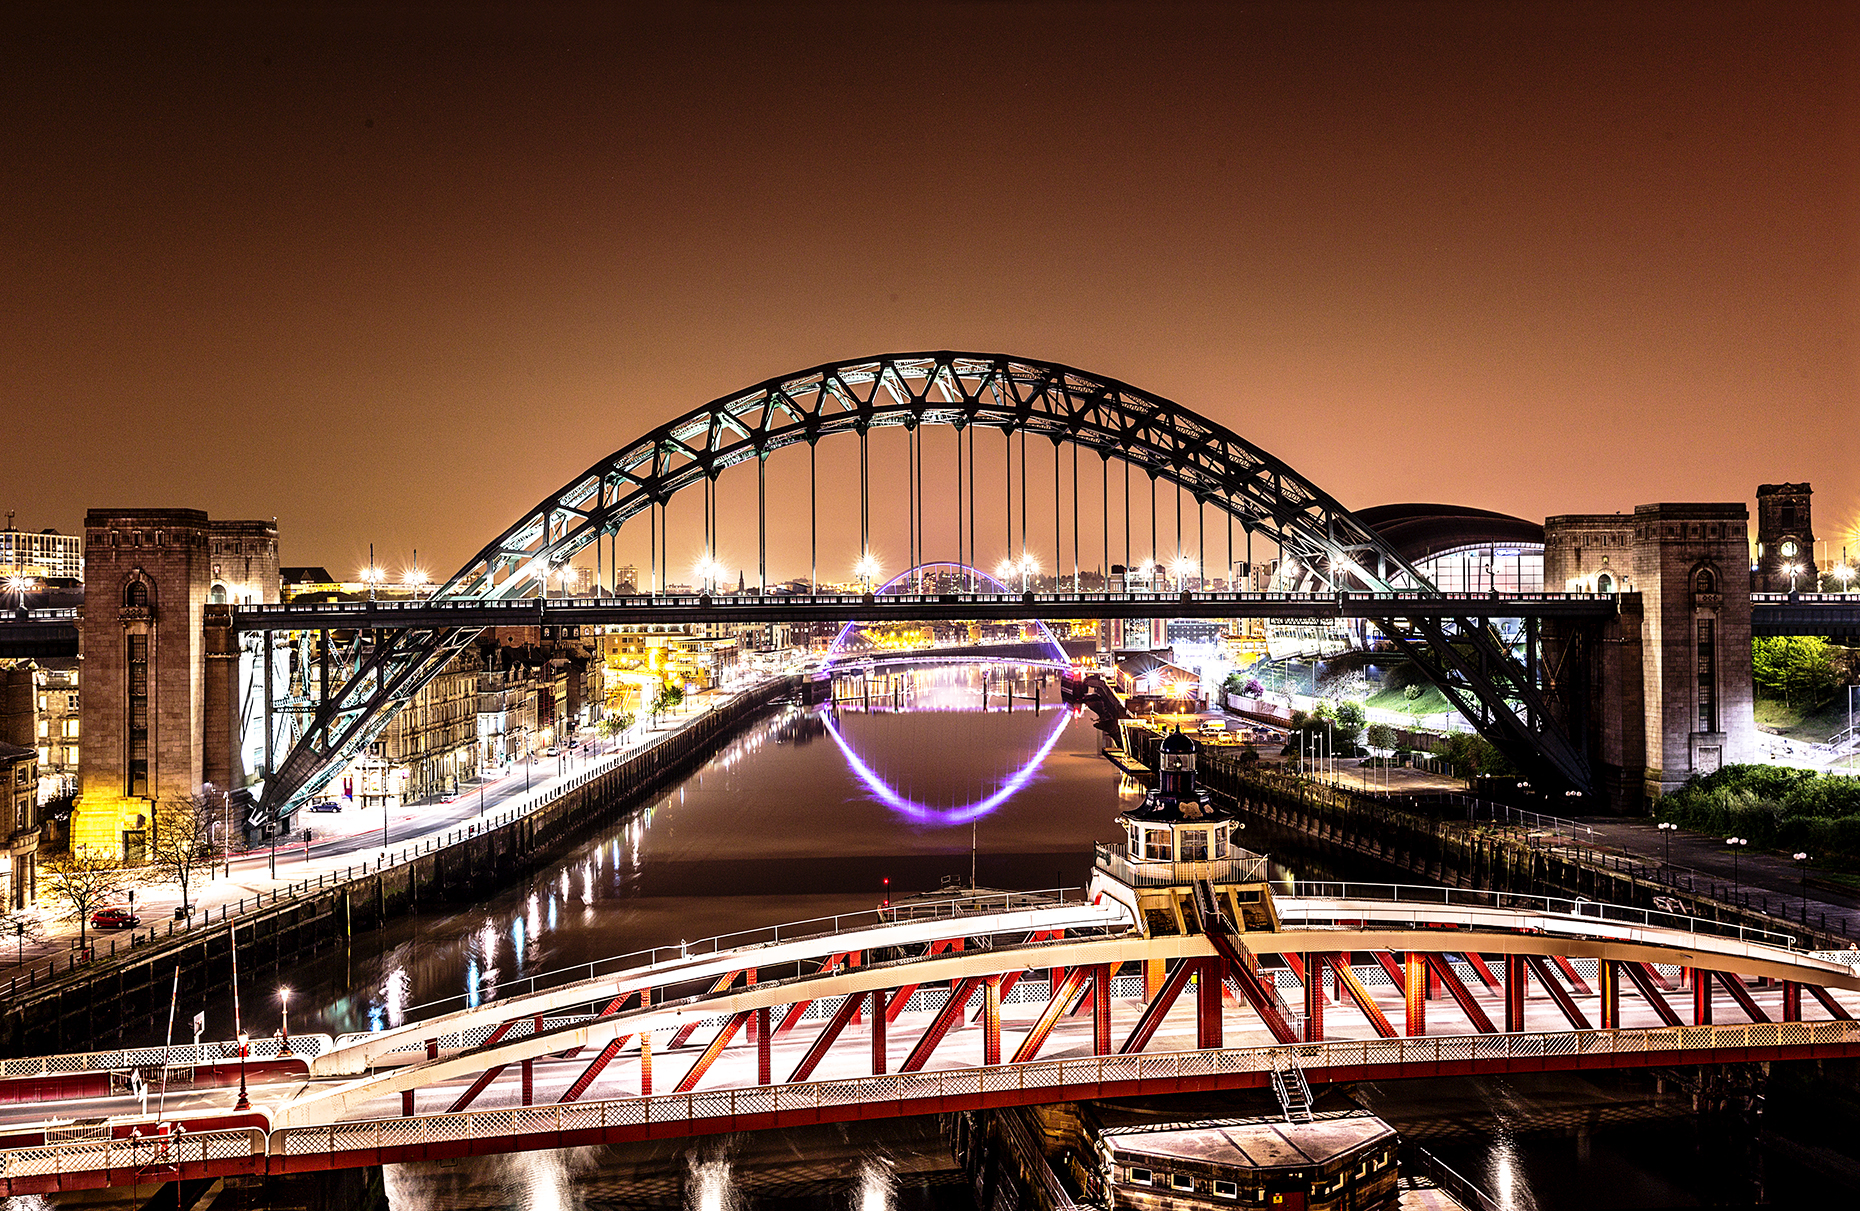 Cities at Night - Newcastle